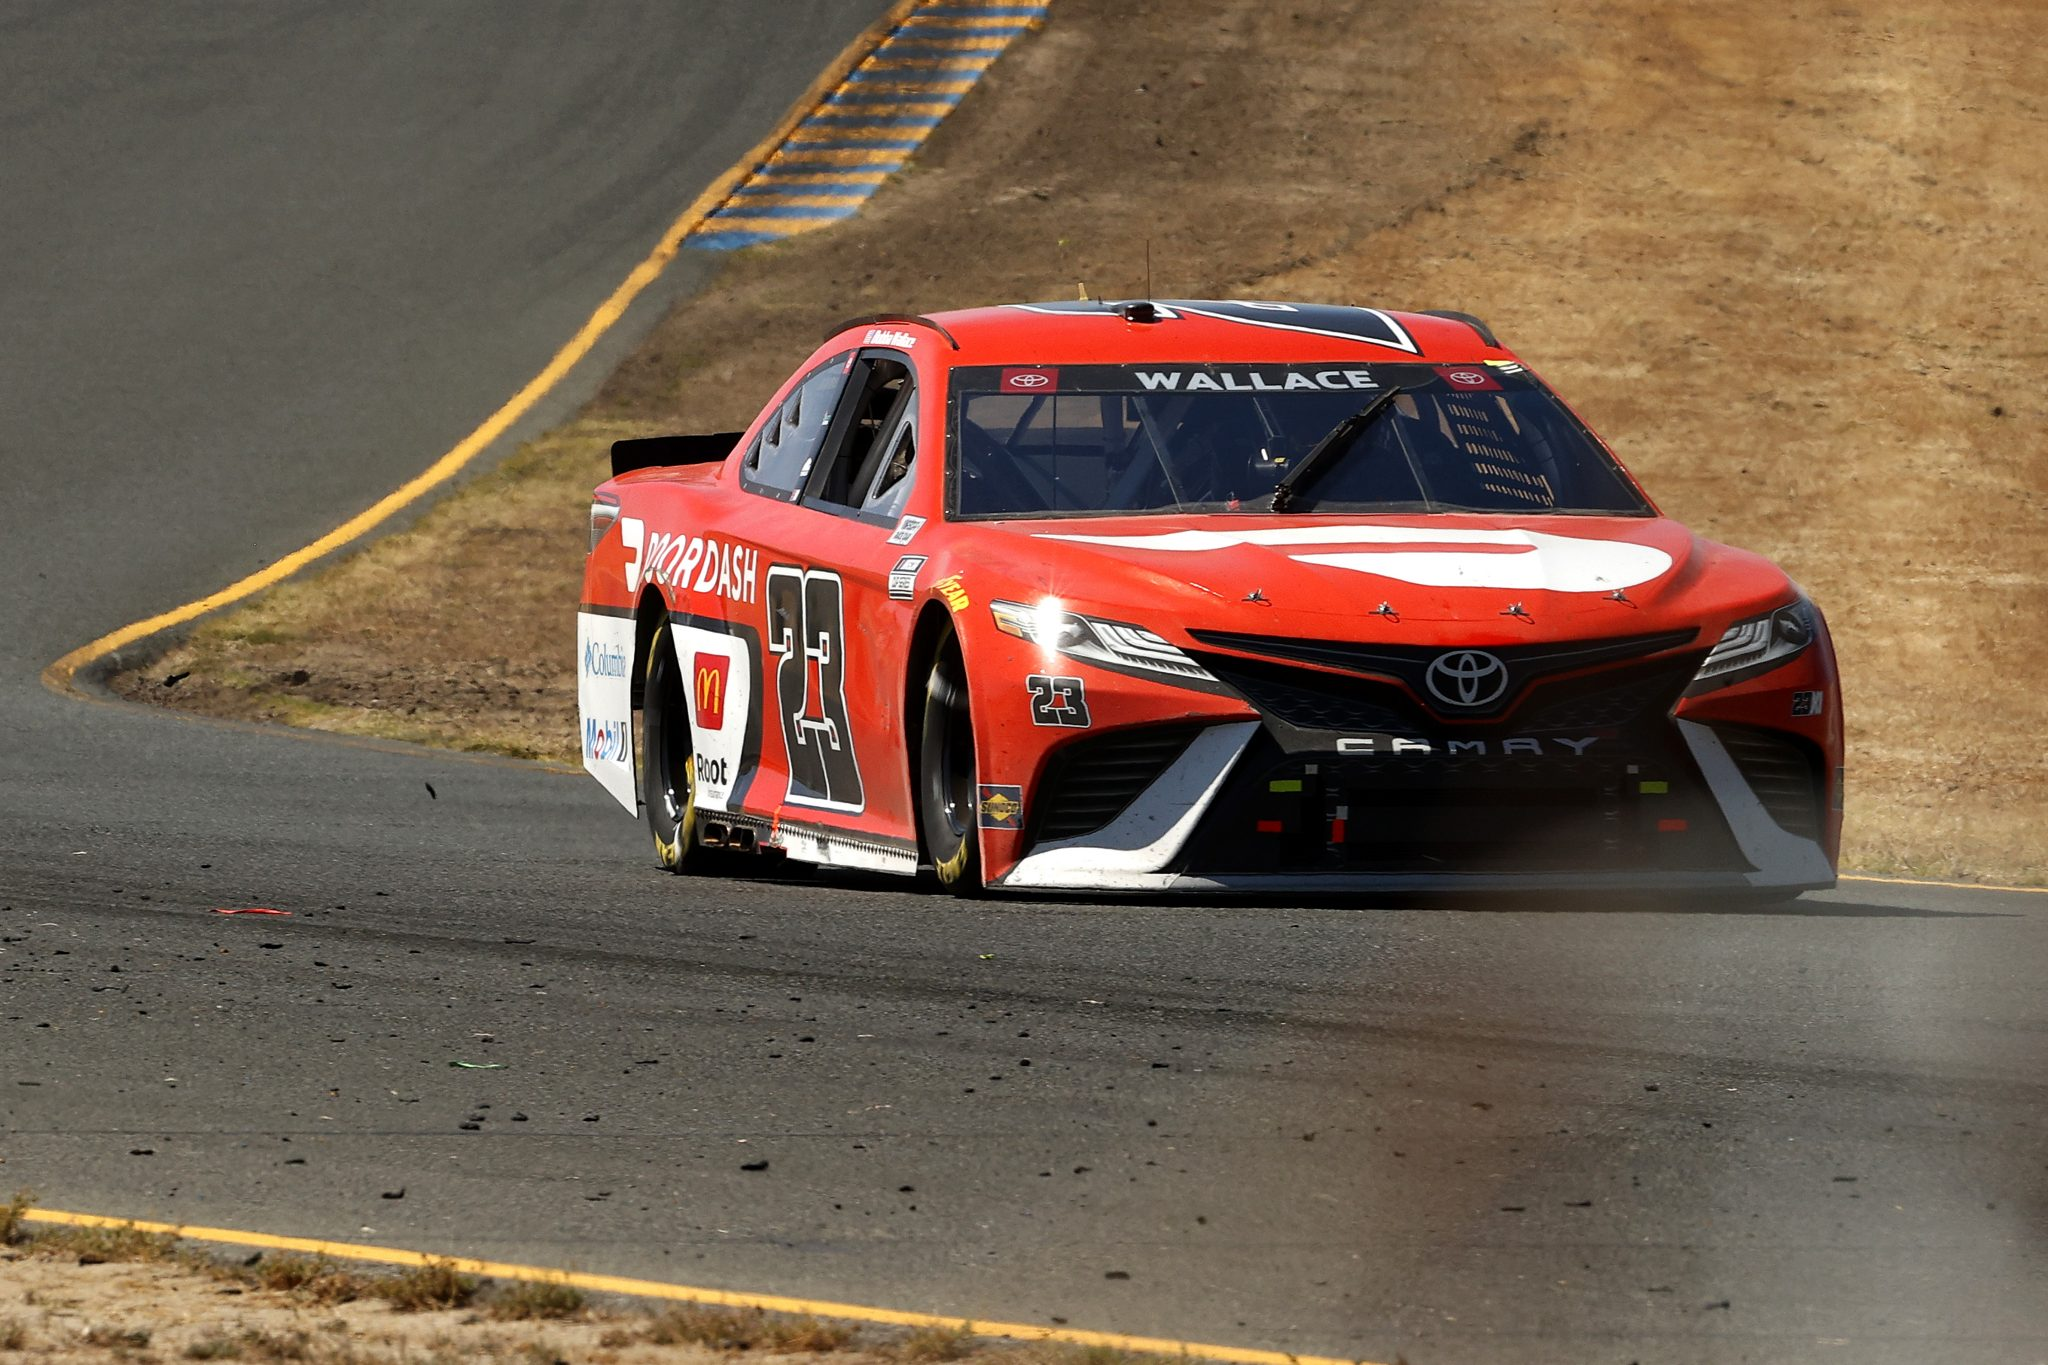 SONOMA, CALIFORNIA - JUNE 06: Bubba Wallace, driver of the #23 DoorDash Toyota, drives during the NASCAR Cup Series Toyota/Save Mart 350 at Sonoma Raceway on June 06, 2021 in Sonoma, California. (Photo by Maddie Meyer/Getty Images) | Getty Images